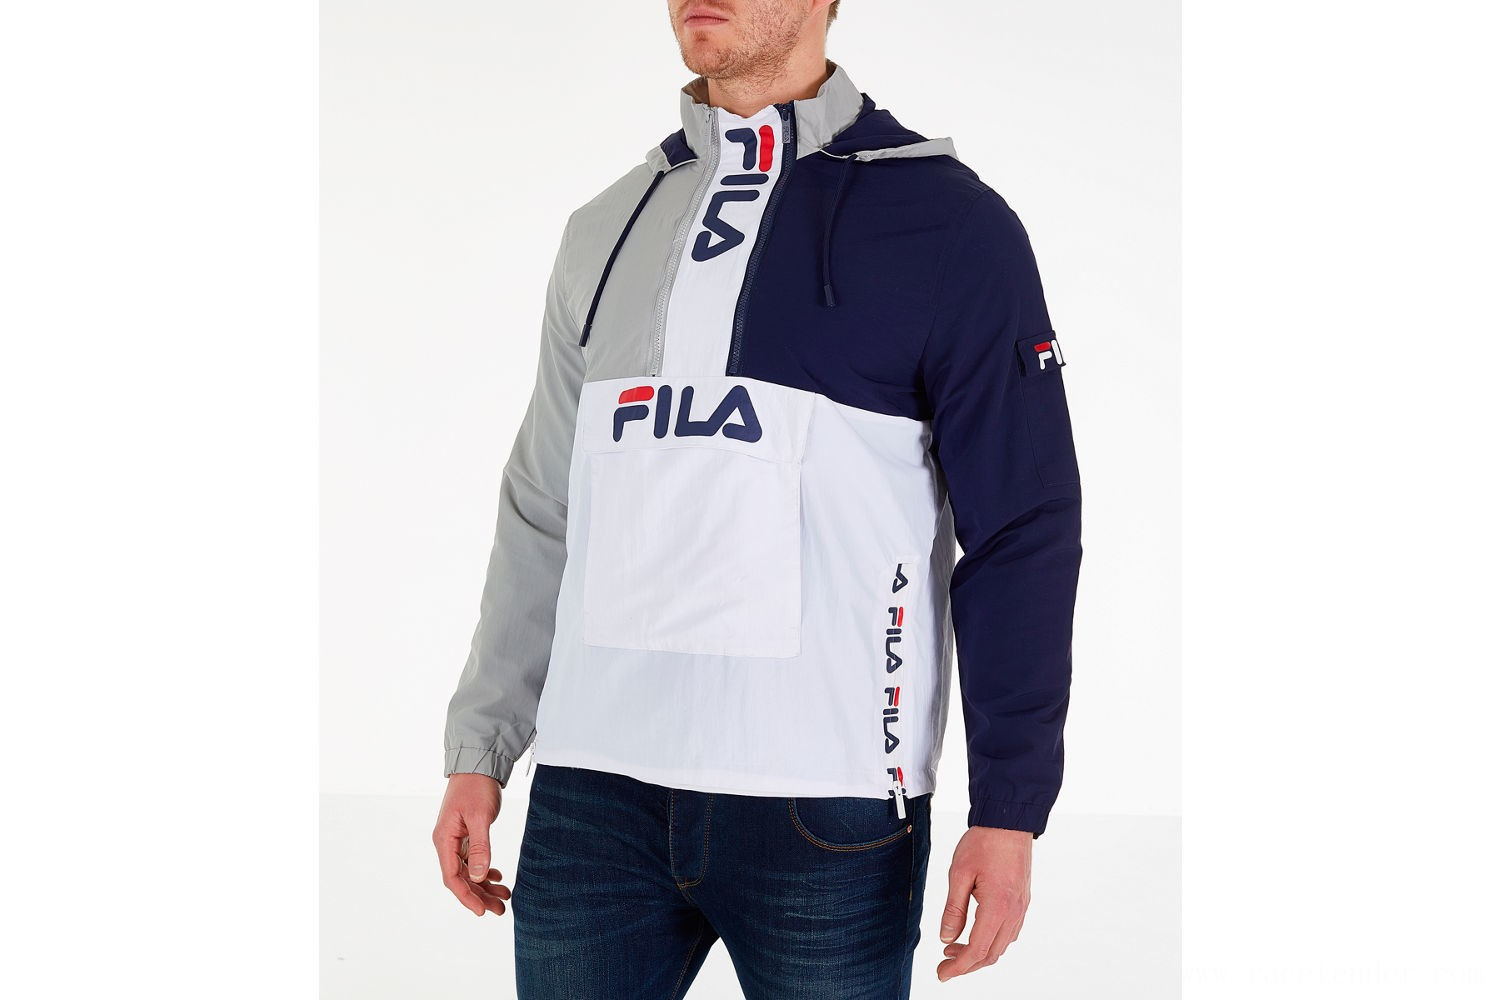 Fila Men's Parallax Wind Jacket - Grey/Navy